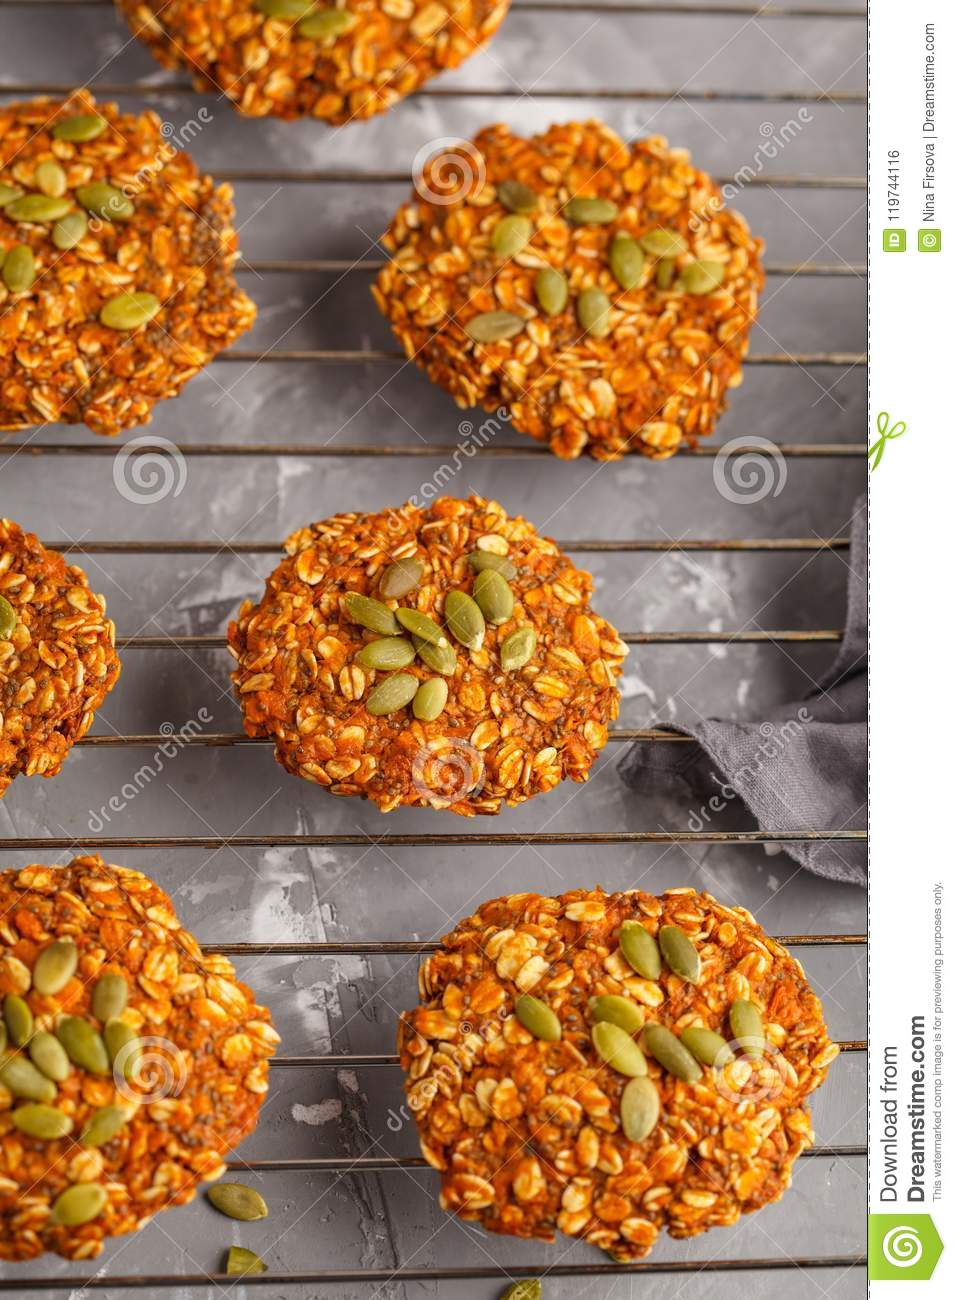 vegan oatmeal sweet potato cookies on gray background, halloween